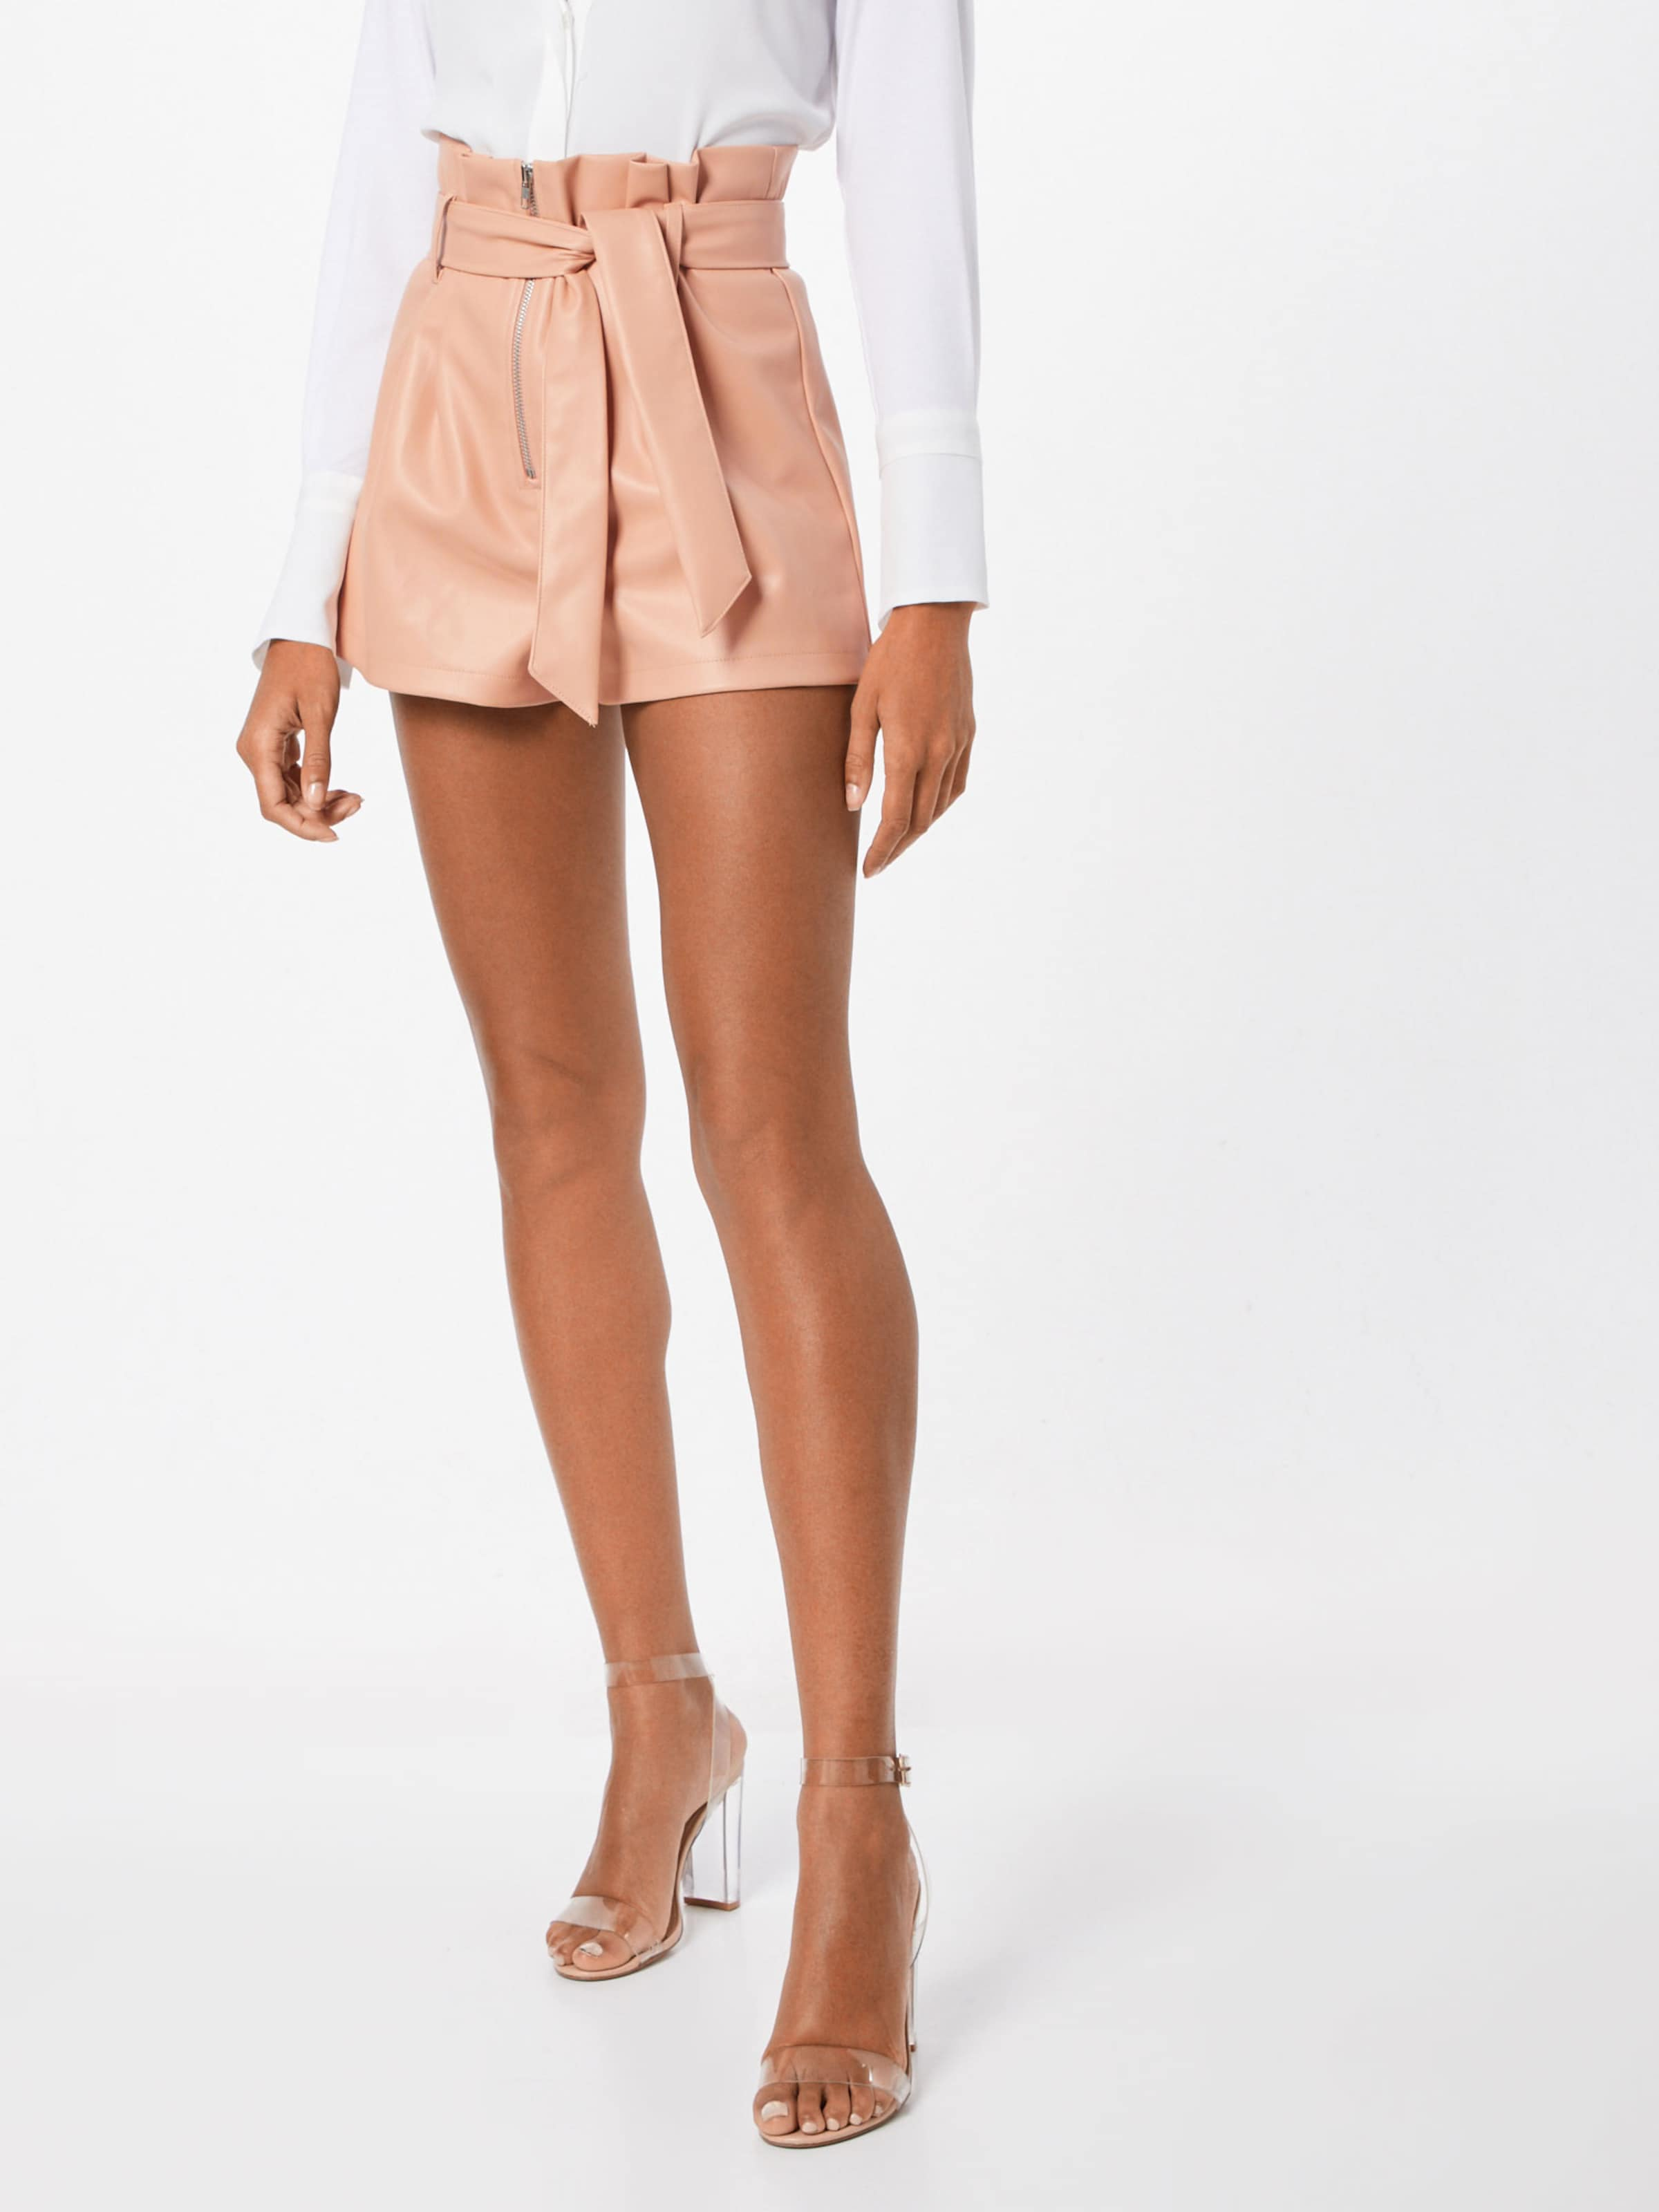 Missguided Hose Hose Pfirsich In Pfirsich Missguided Hose Missguided In OuPkXTZwi